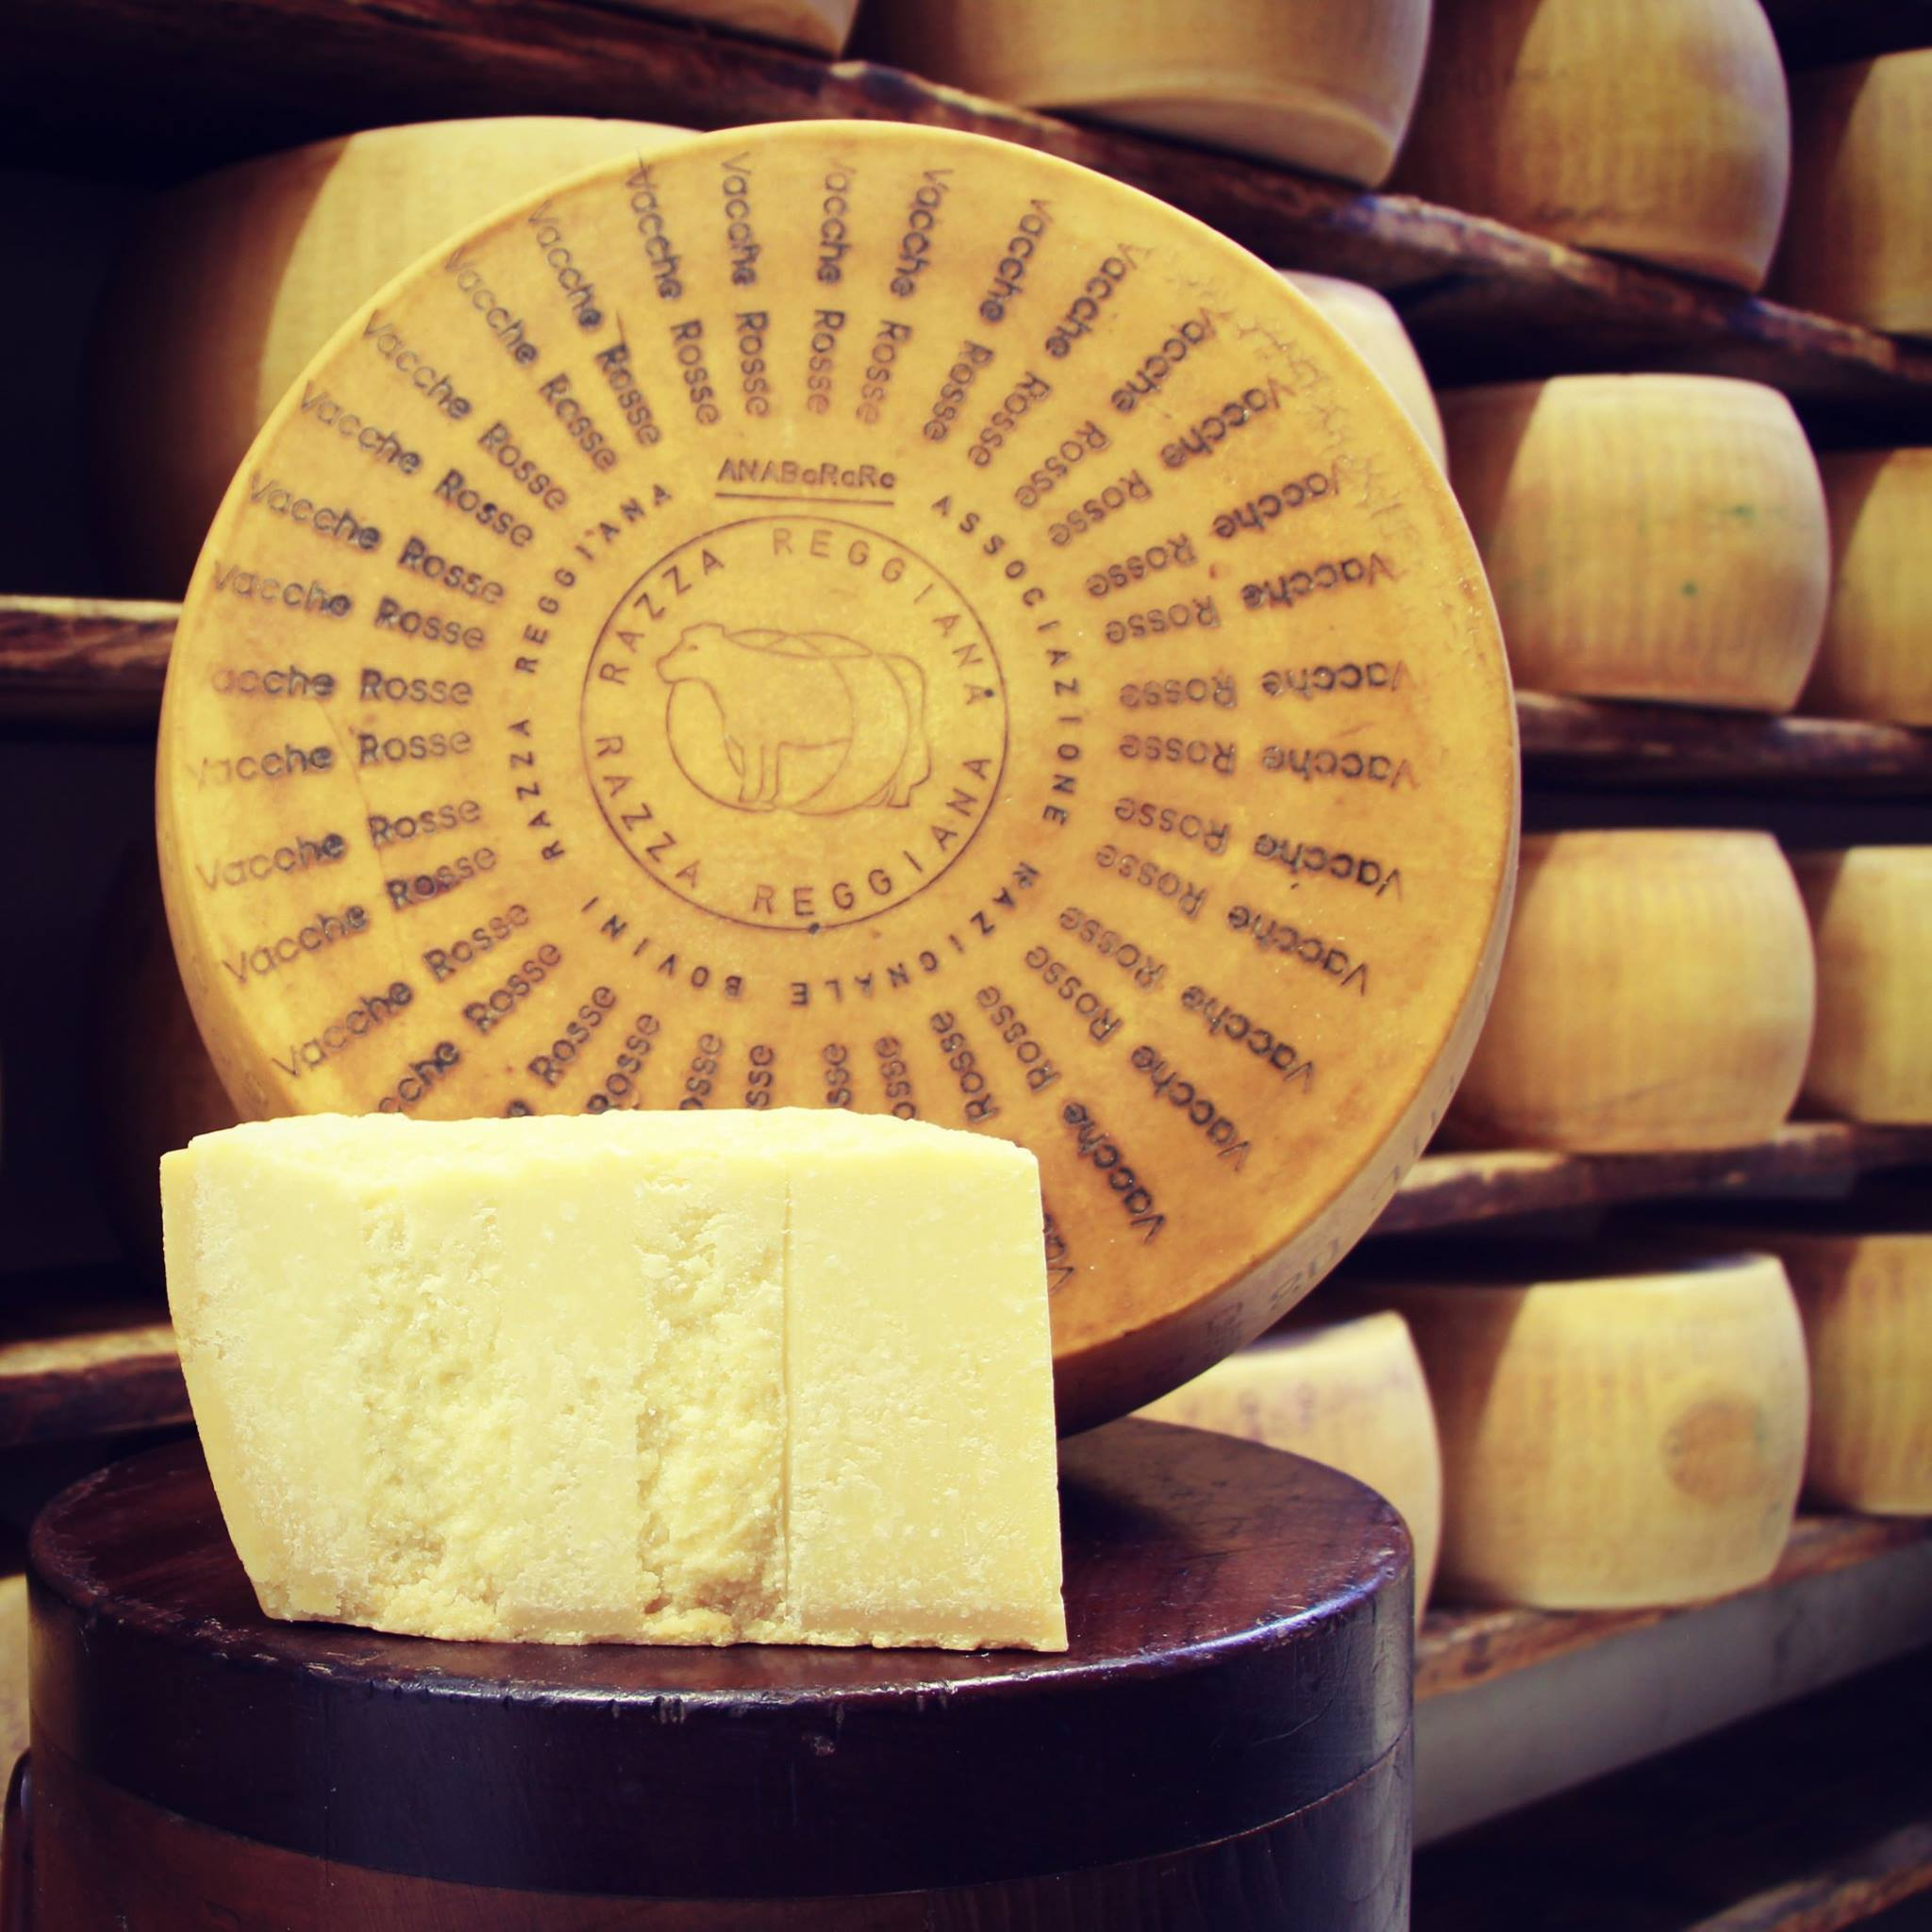 Parmigiano Reggiano Vacche Rosse(milk from the red cows) -  24/30 mesi 0,50 / 0,55 Kg.